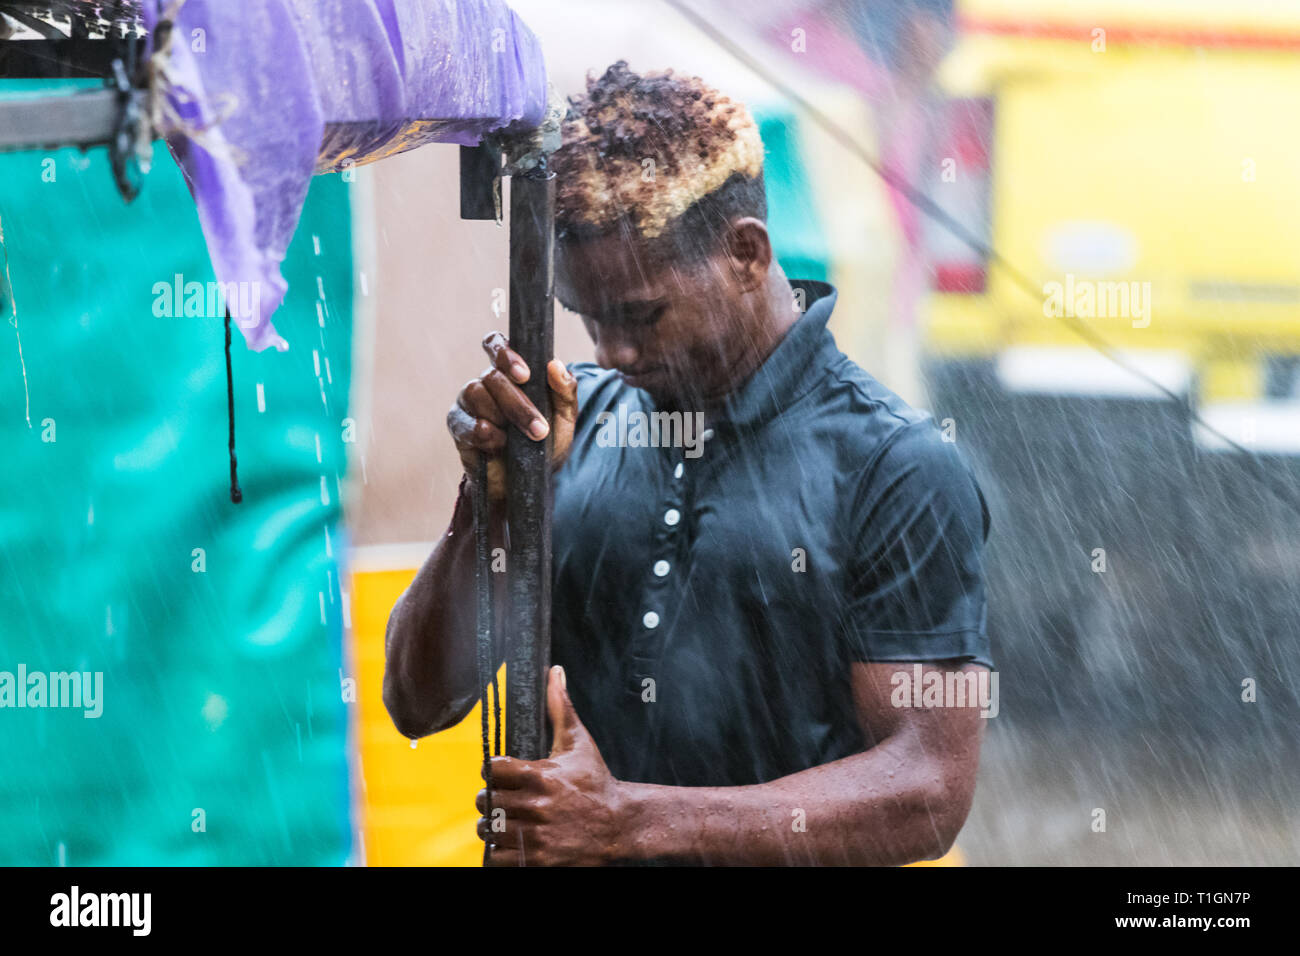 Nosy Be, Madagascar - January 17th, 2019: A man working taking apart his street stall under a heavy rain in Nosy Be, Madagascar. - Stock Image